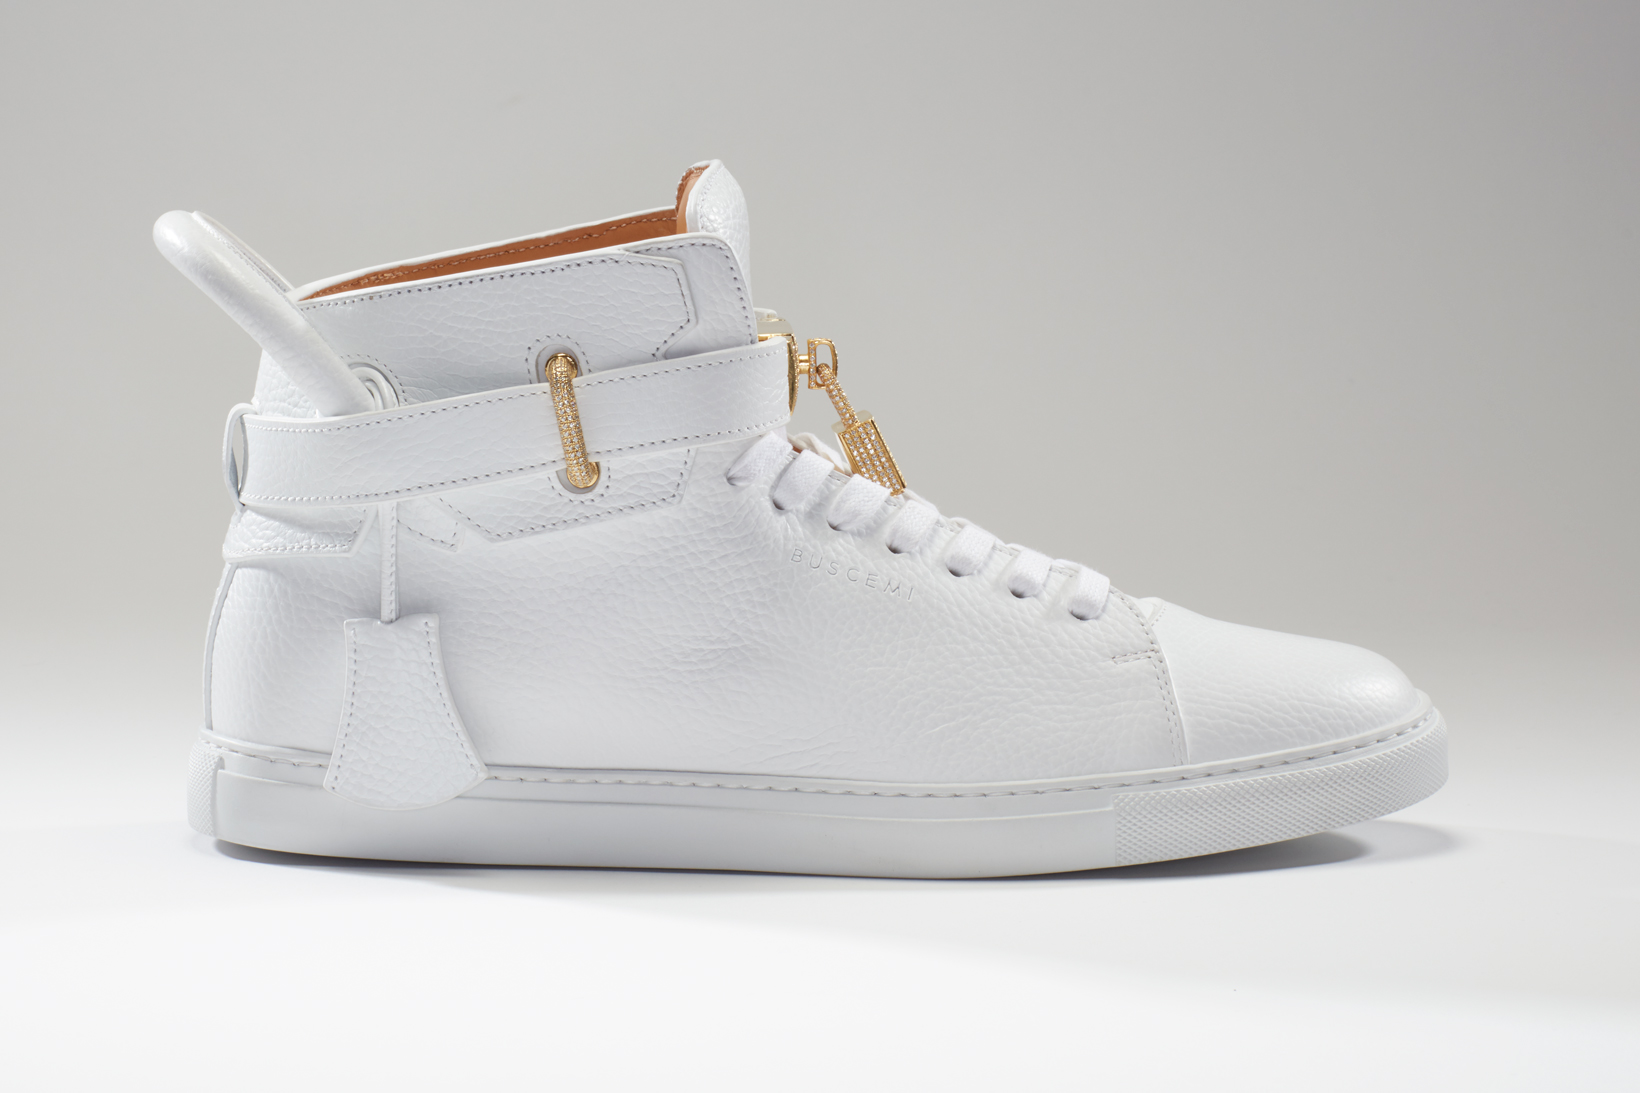 BUSCEMI's Latest 100mm Diamond Sneaker Costs a Whopping $132,000 USD